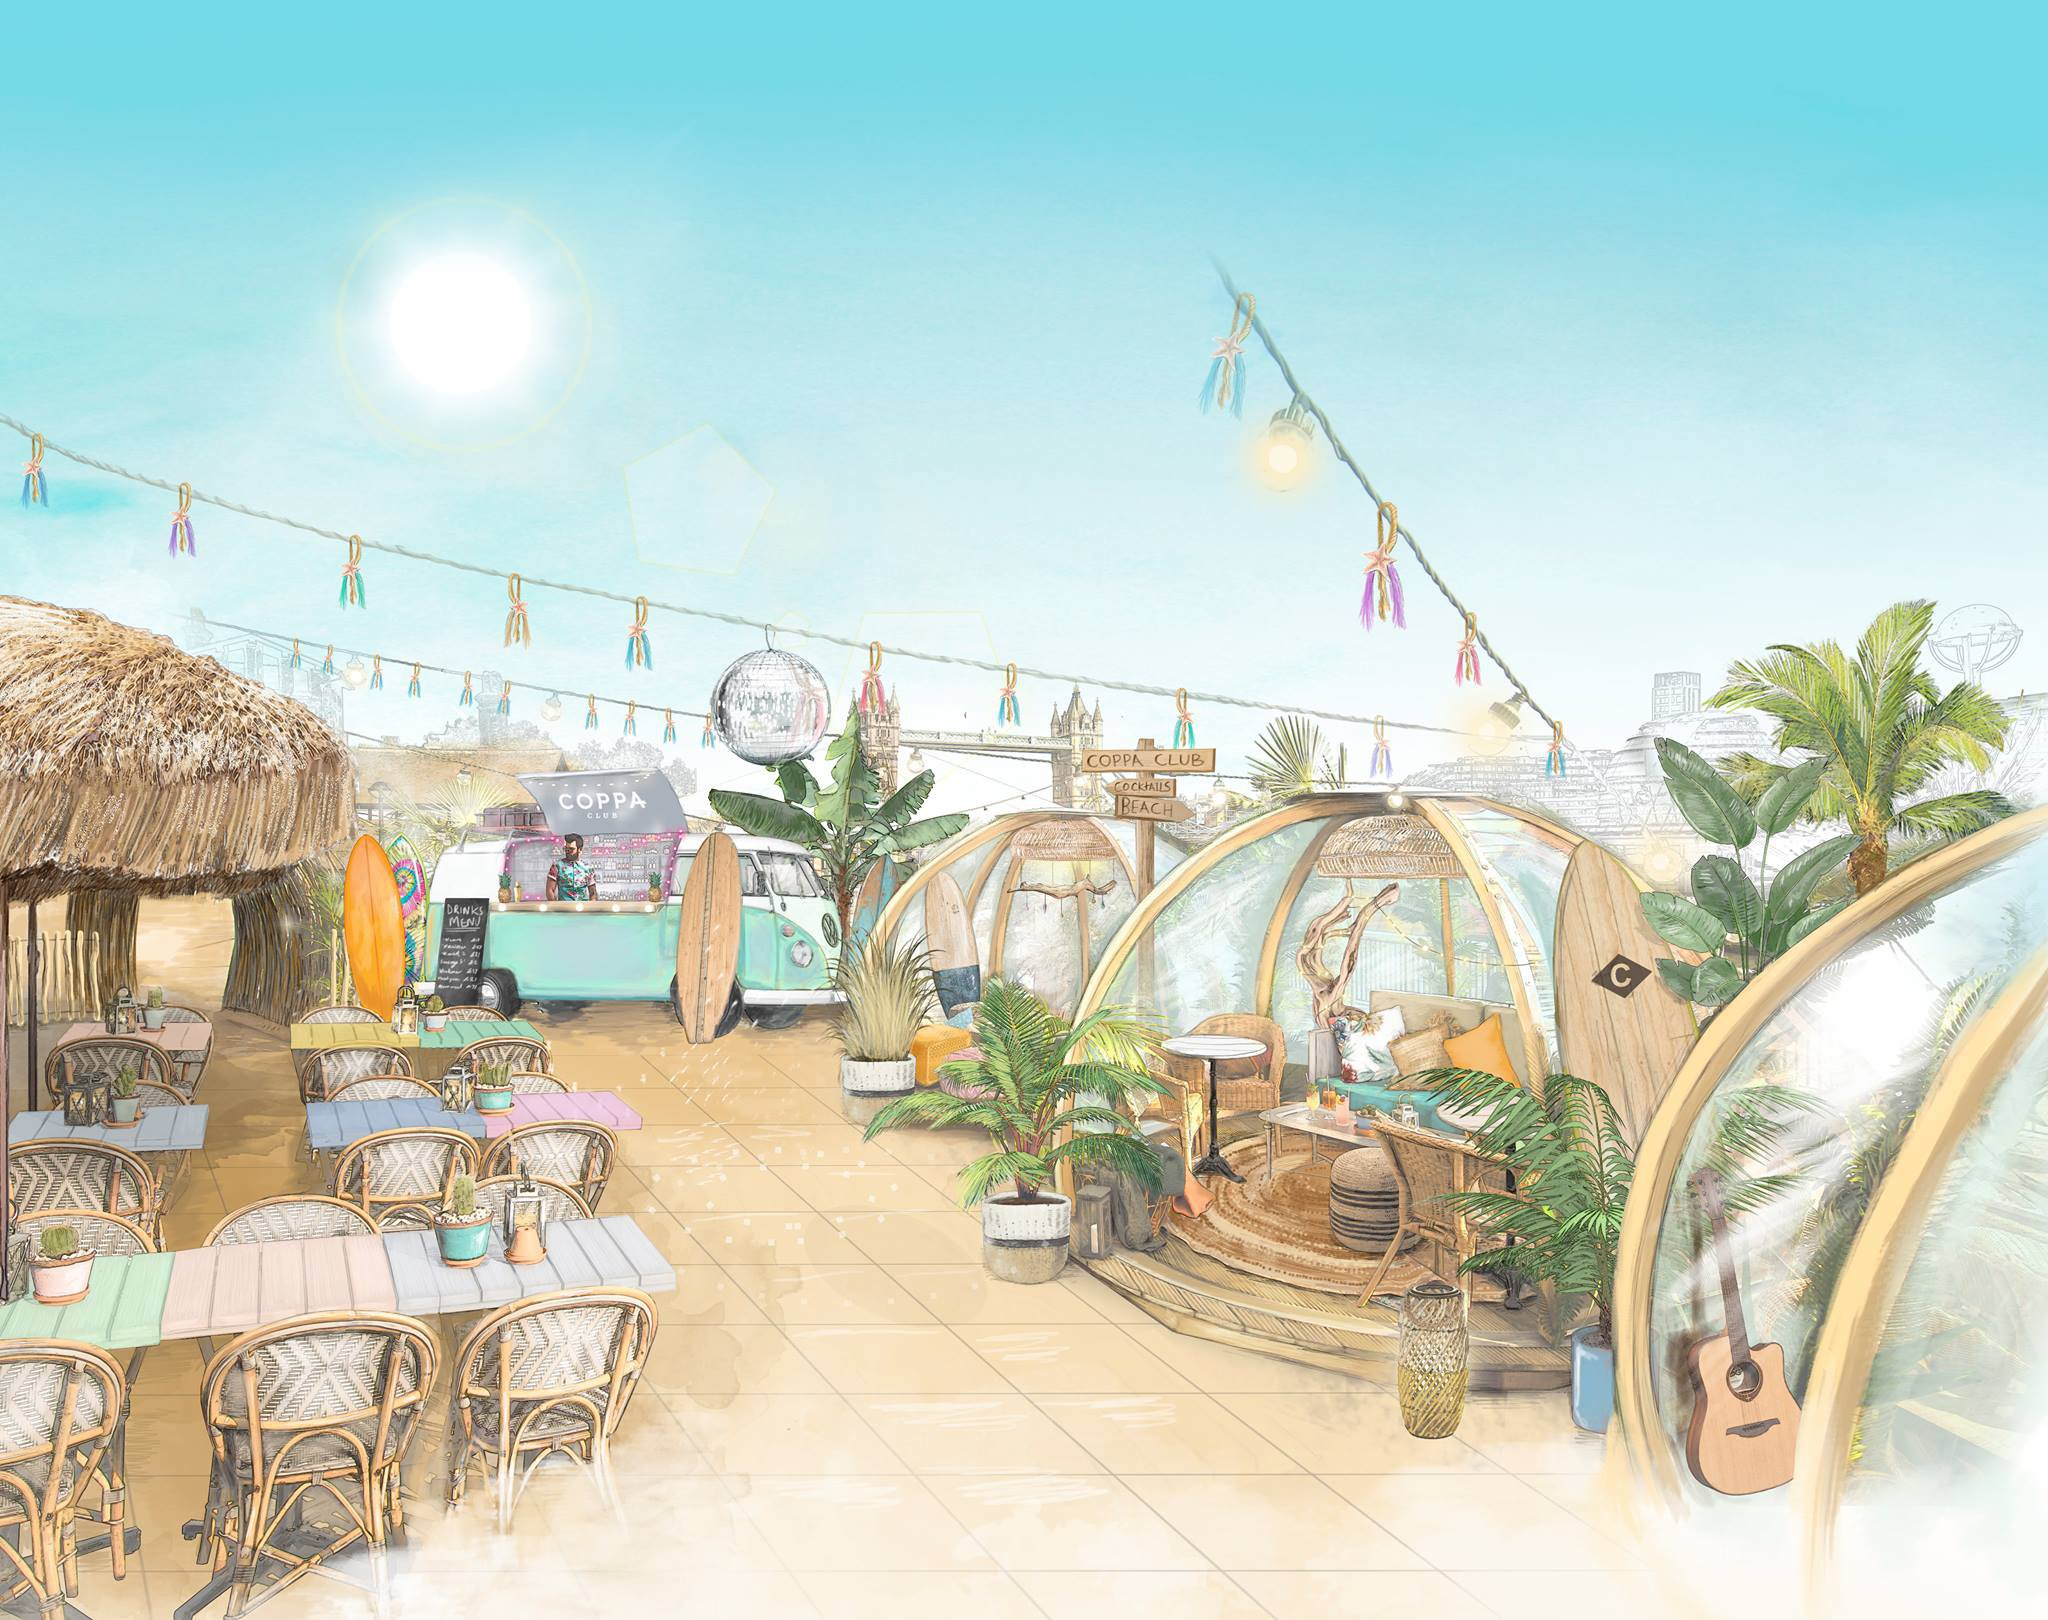 Coppa Club surf shack illustration